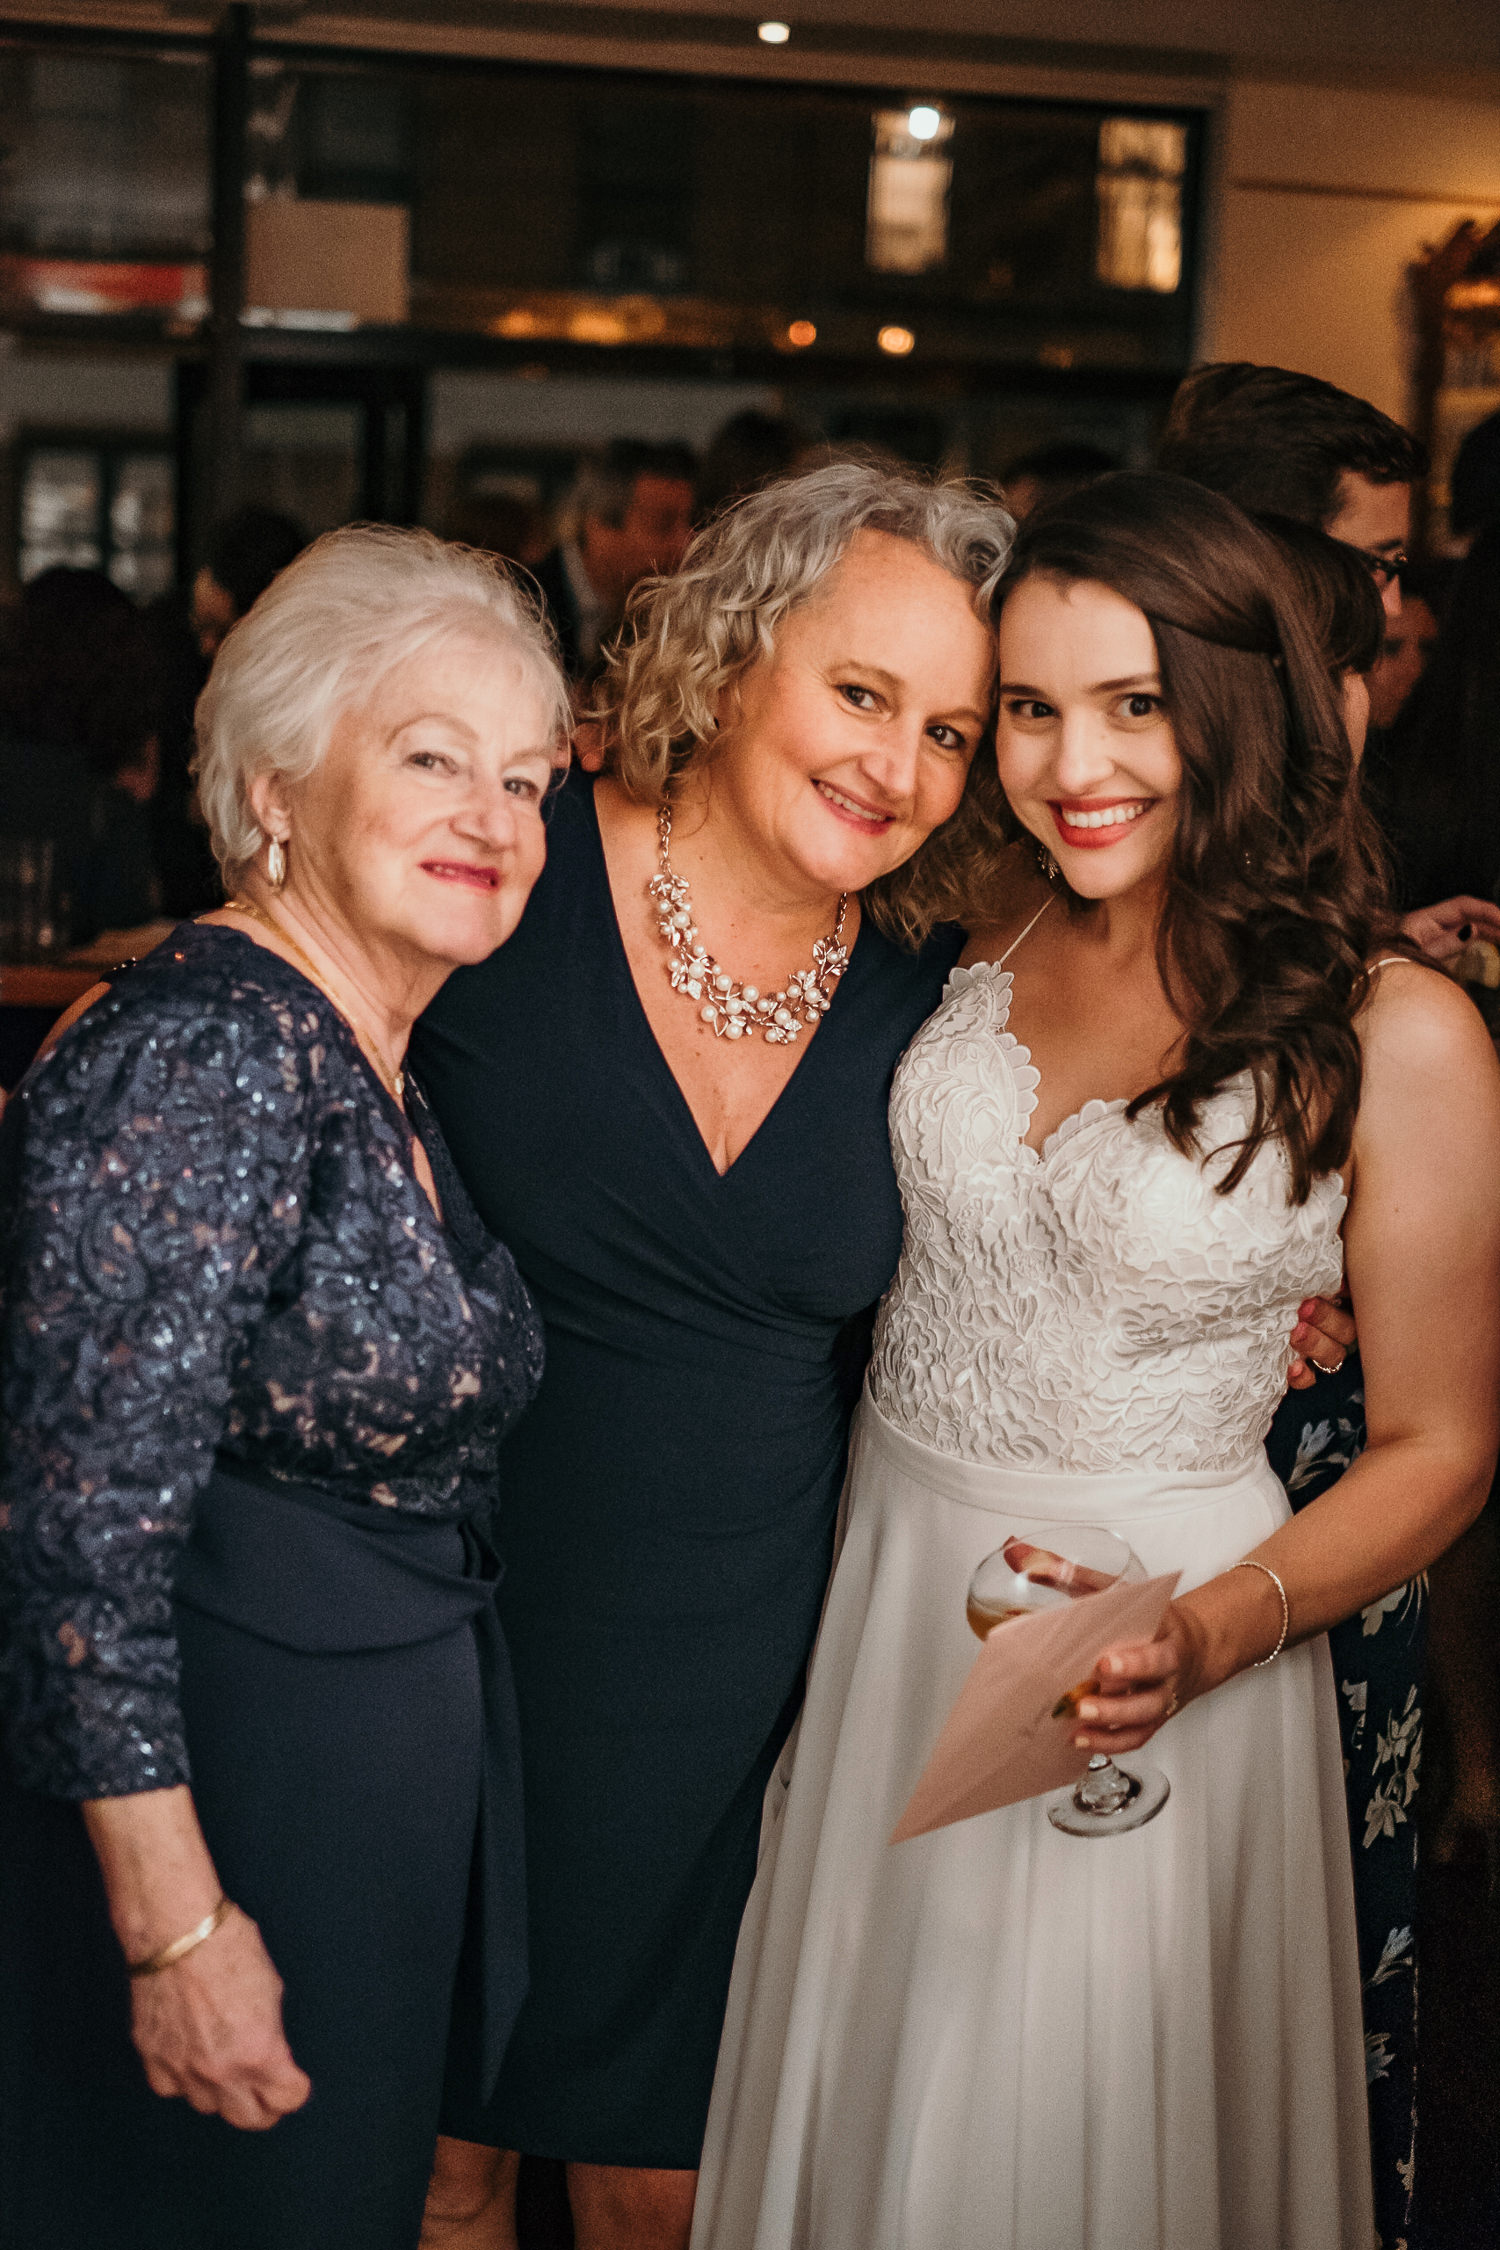 three generations mother grandmother bride posing smiling